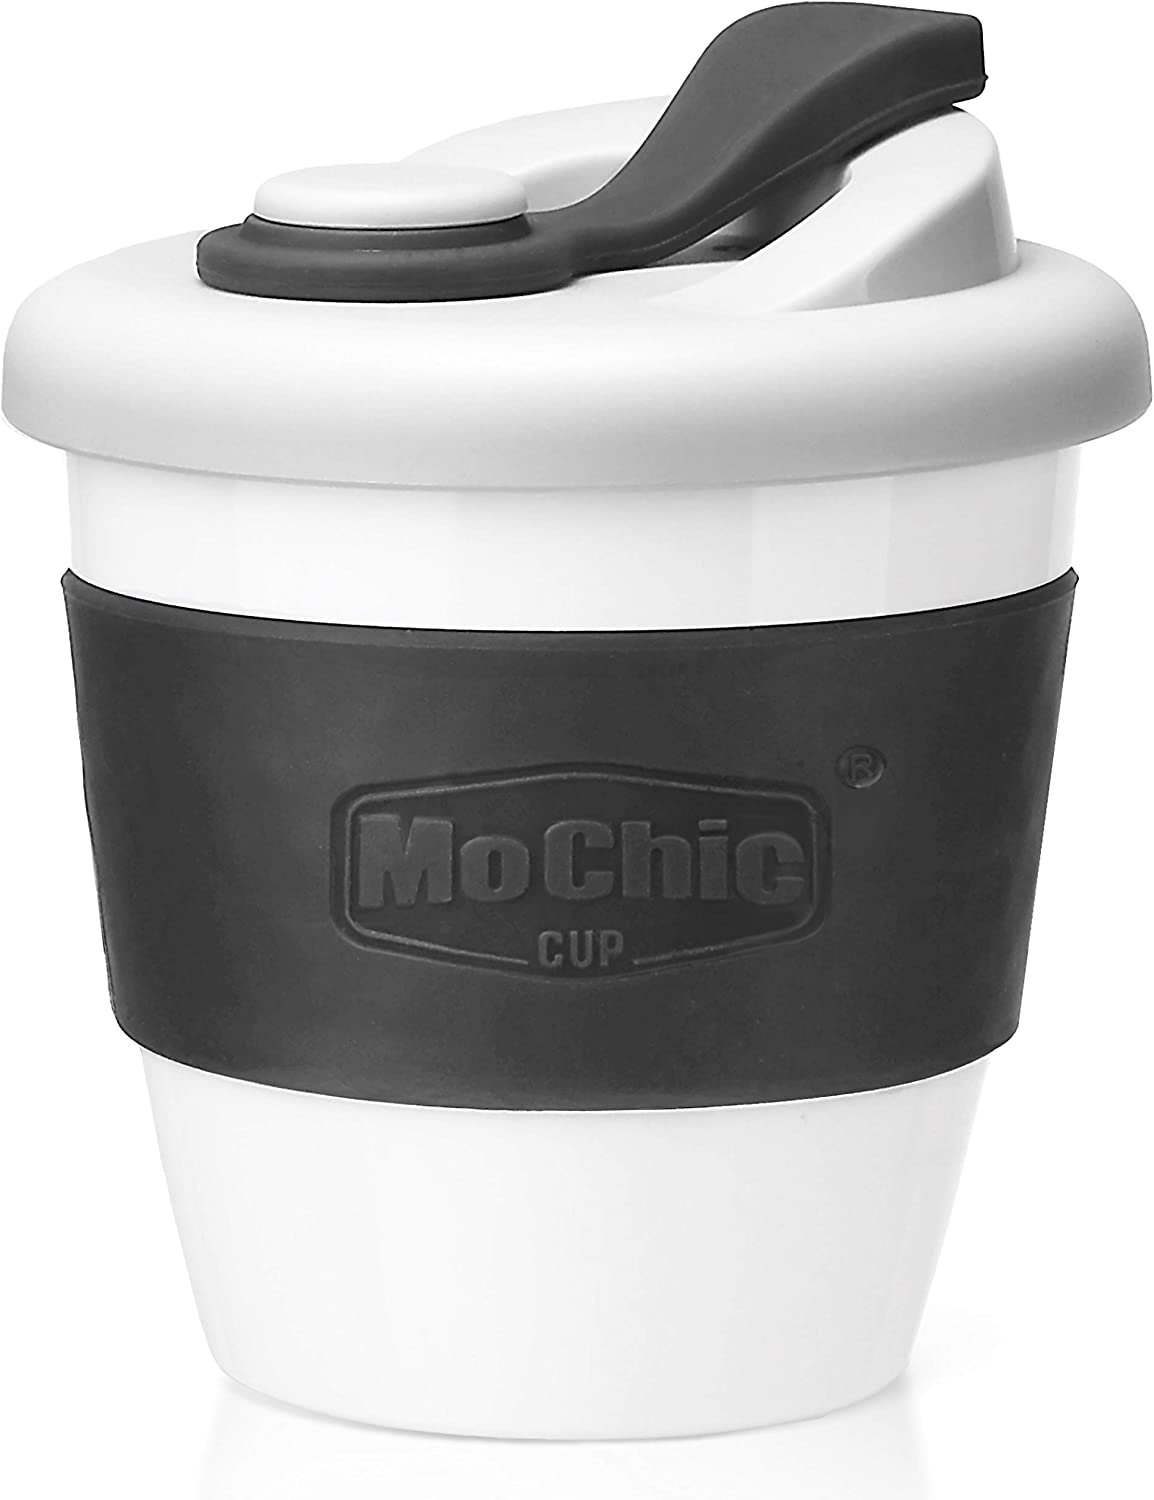 MOCHIC CUP Reusable Coffee Cup with Lid Portable Travel Mug with Non Slip Sleeve BPA Free Dishwasher and Microwave Safe Friendly Coffee Mug